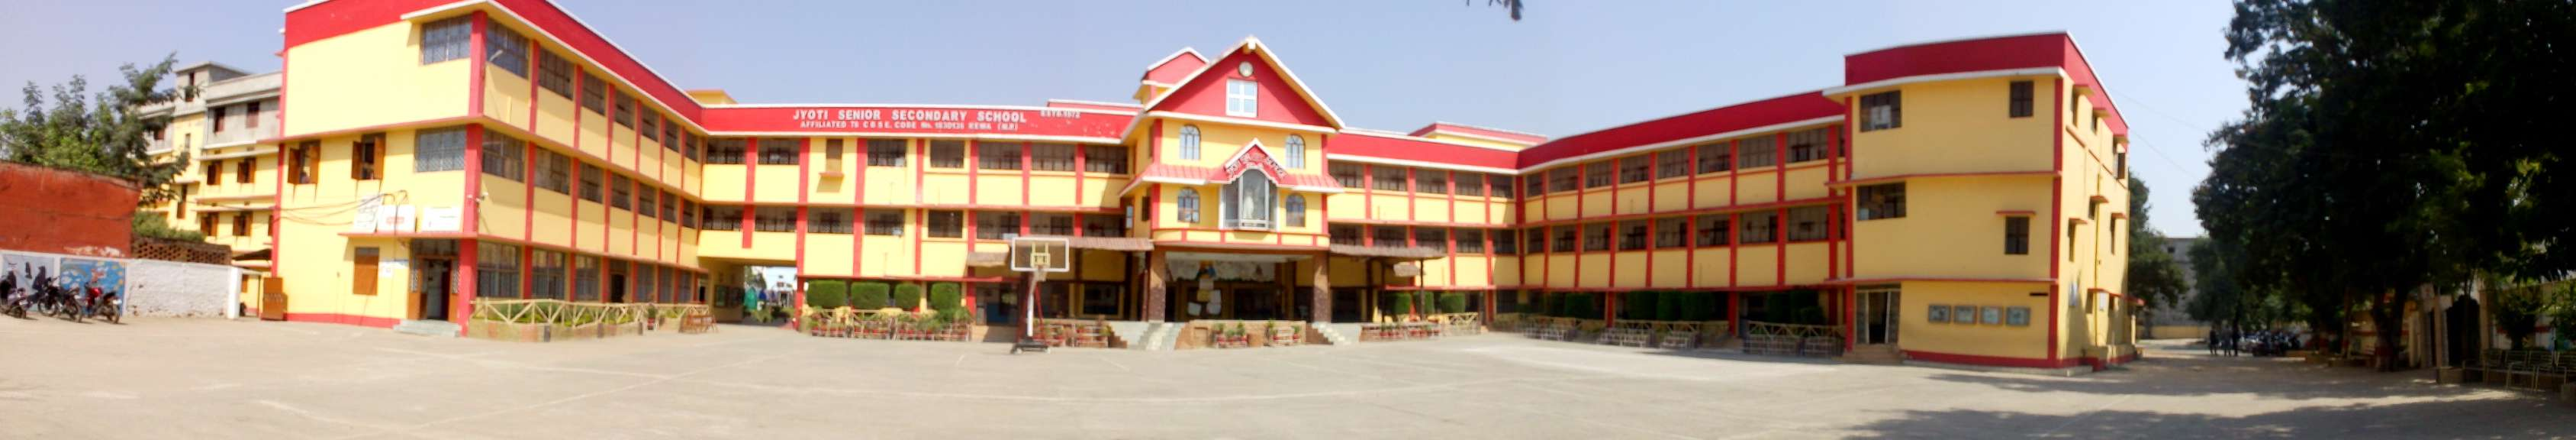 JYOTI SENIOR SECONDARY SCHOOL ALLAHABAD ROAD HPO REWA MADHYA PRADESH 1030136